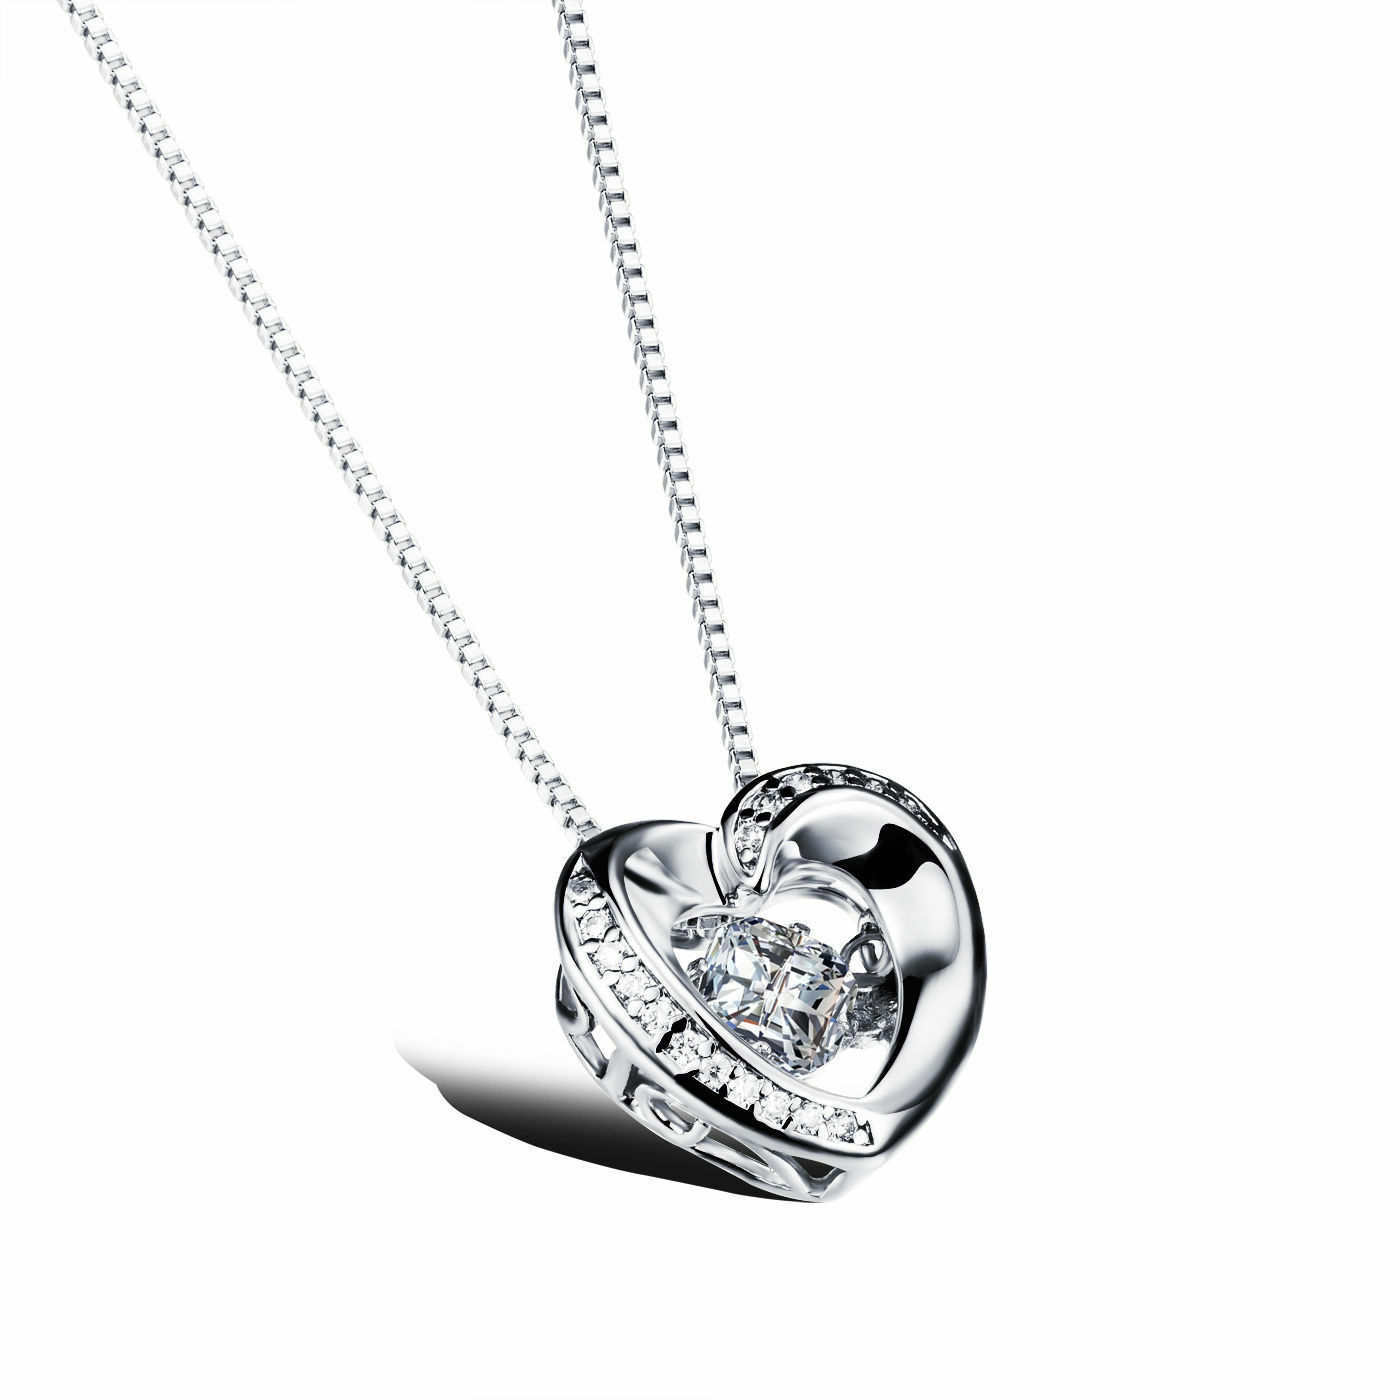 Jewelry - Silver Floating Dancing Crystal Zirconia Stone Heart Frame Pendant Necklace A8